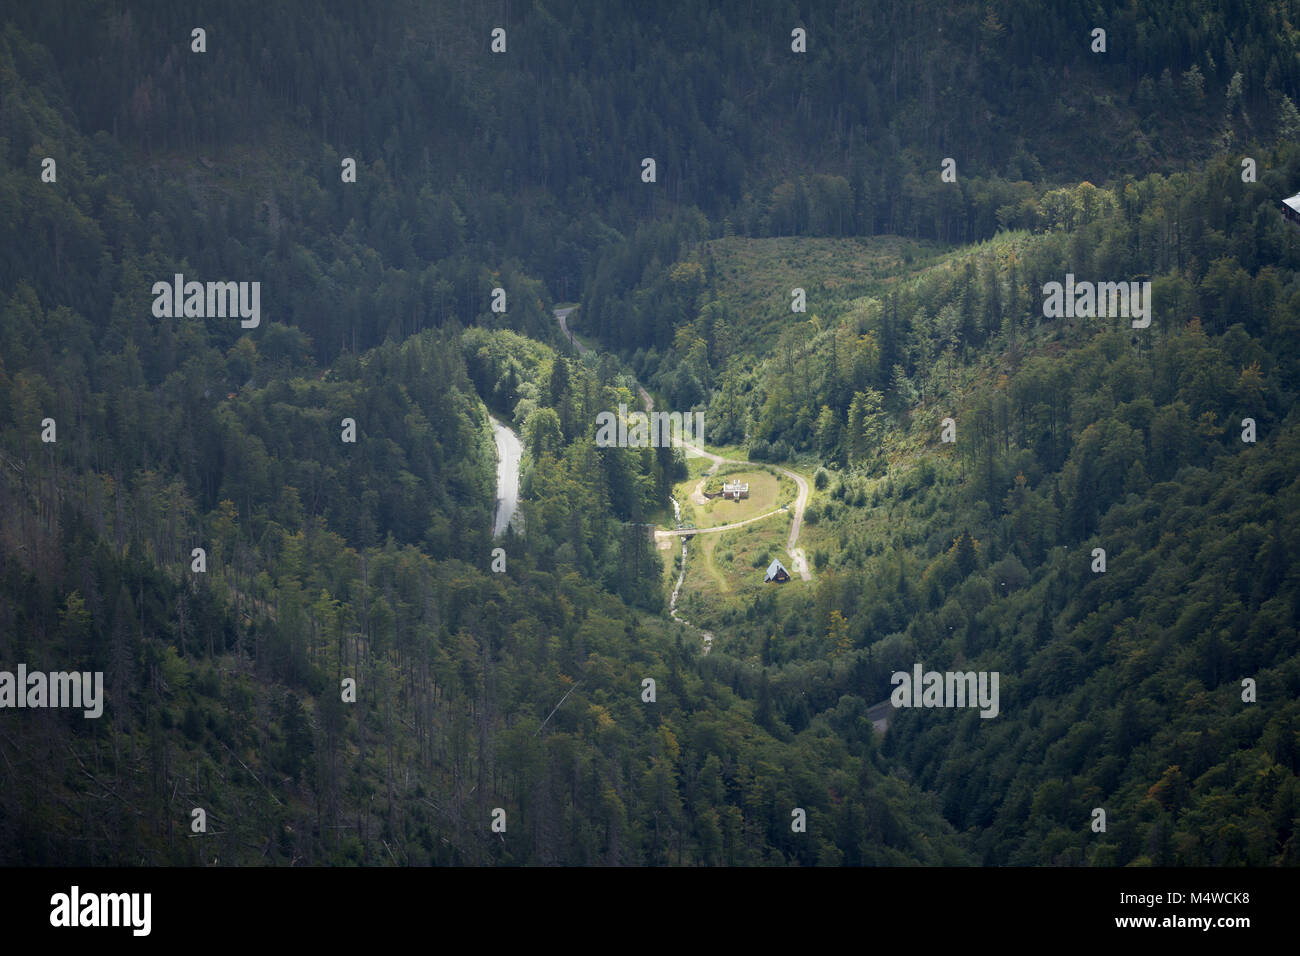 forest aerial view - Stock Image